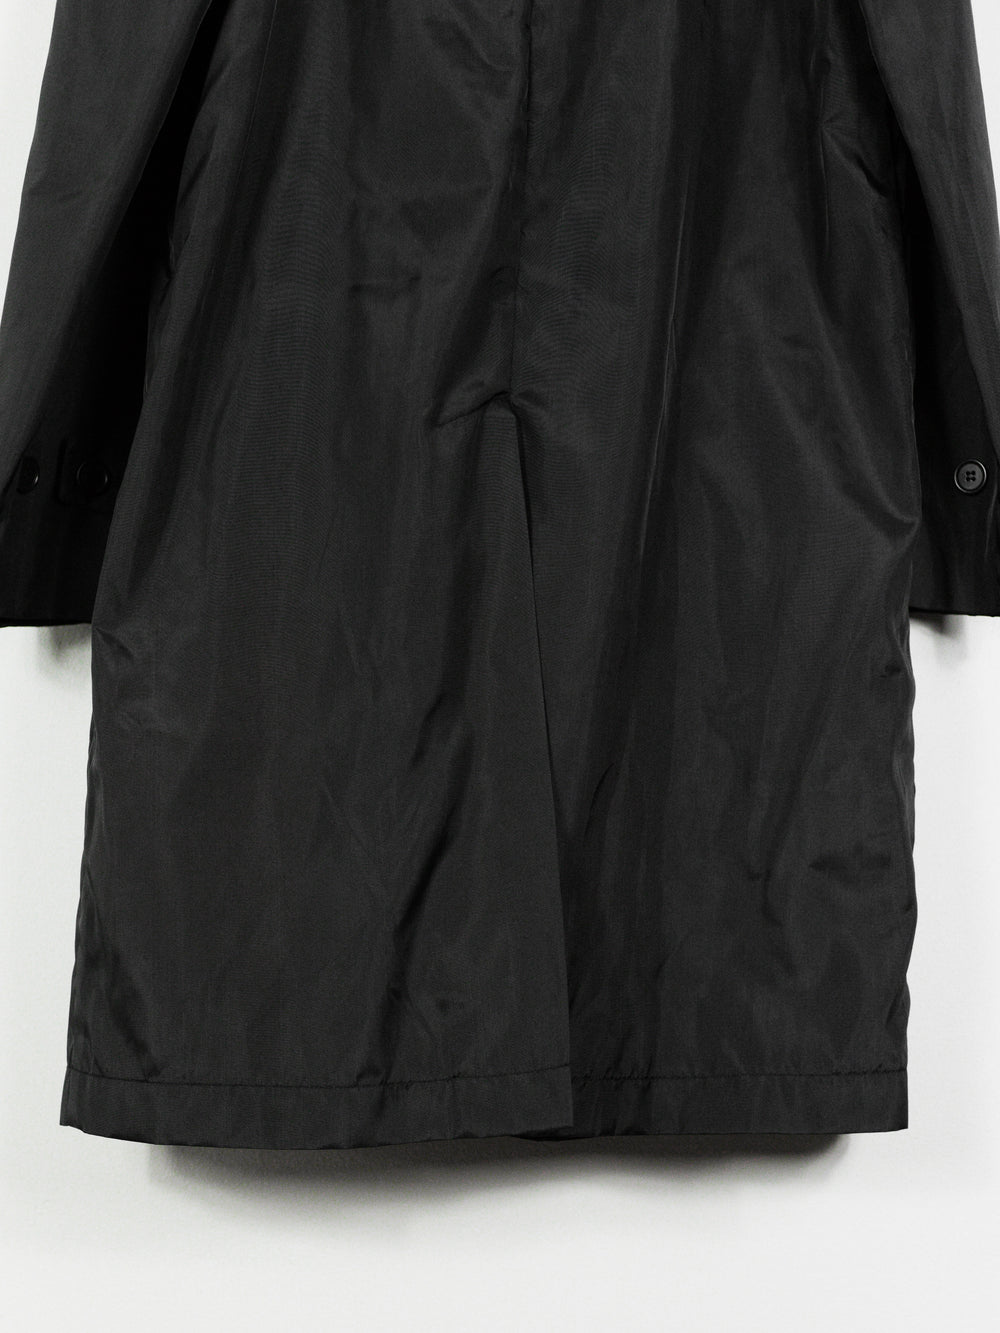 Helmut Lang SS96 Contrast Collar Technical Mac Coat